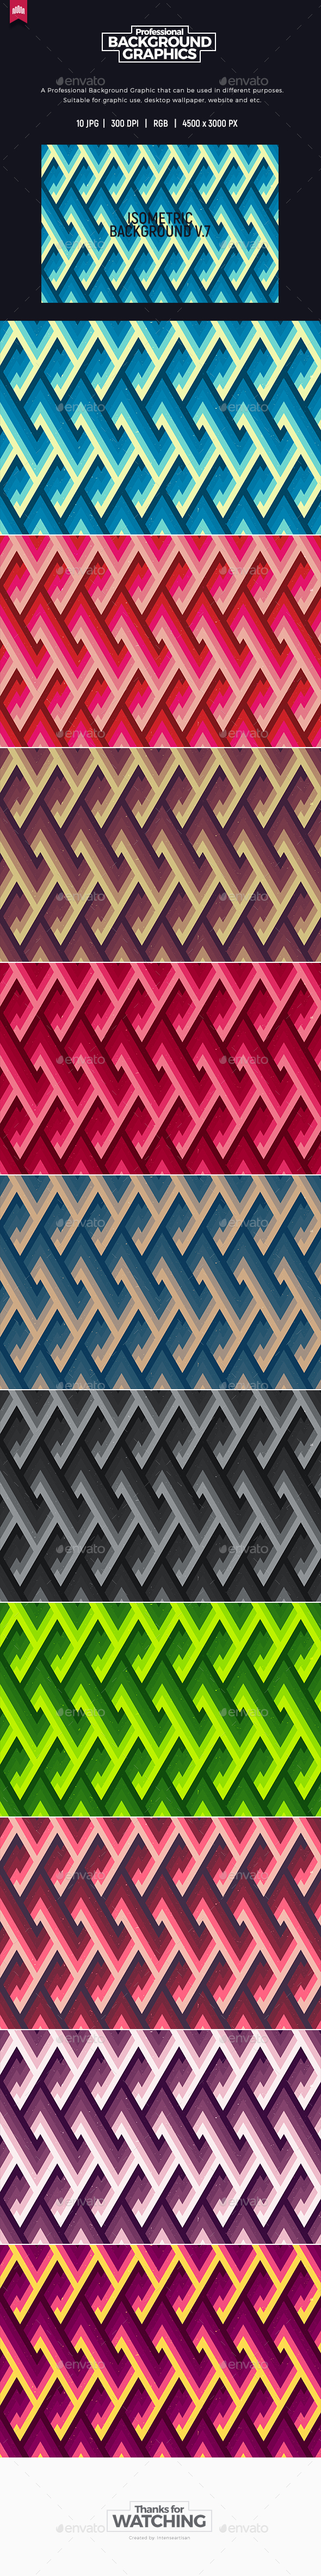 Isometric Background V.7 - Abstract Backgrounds